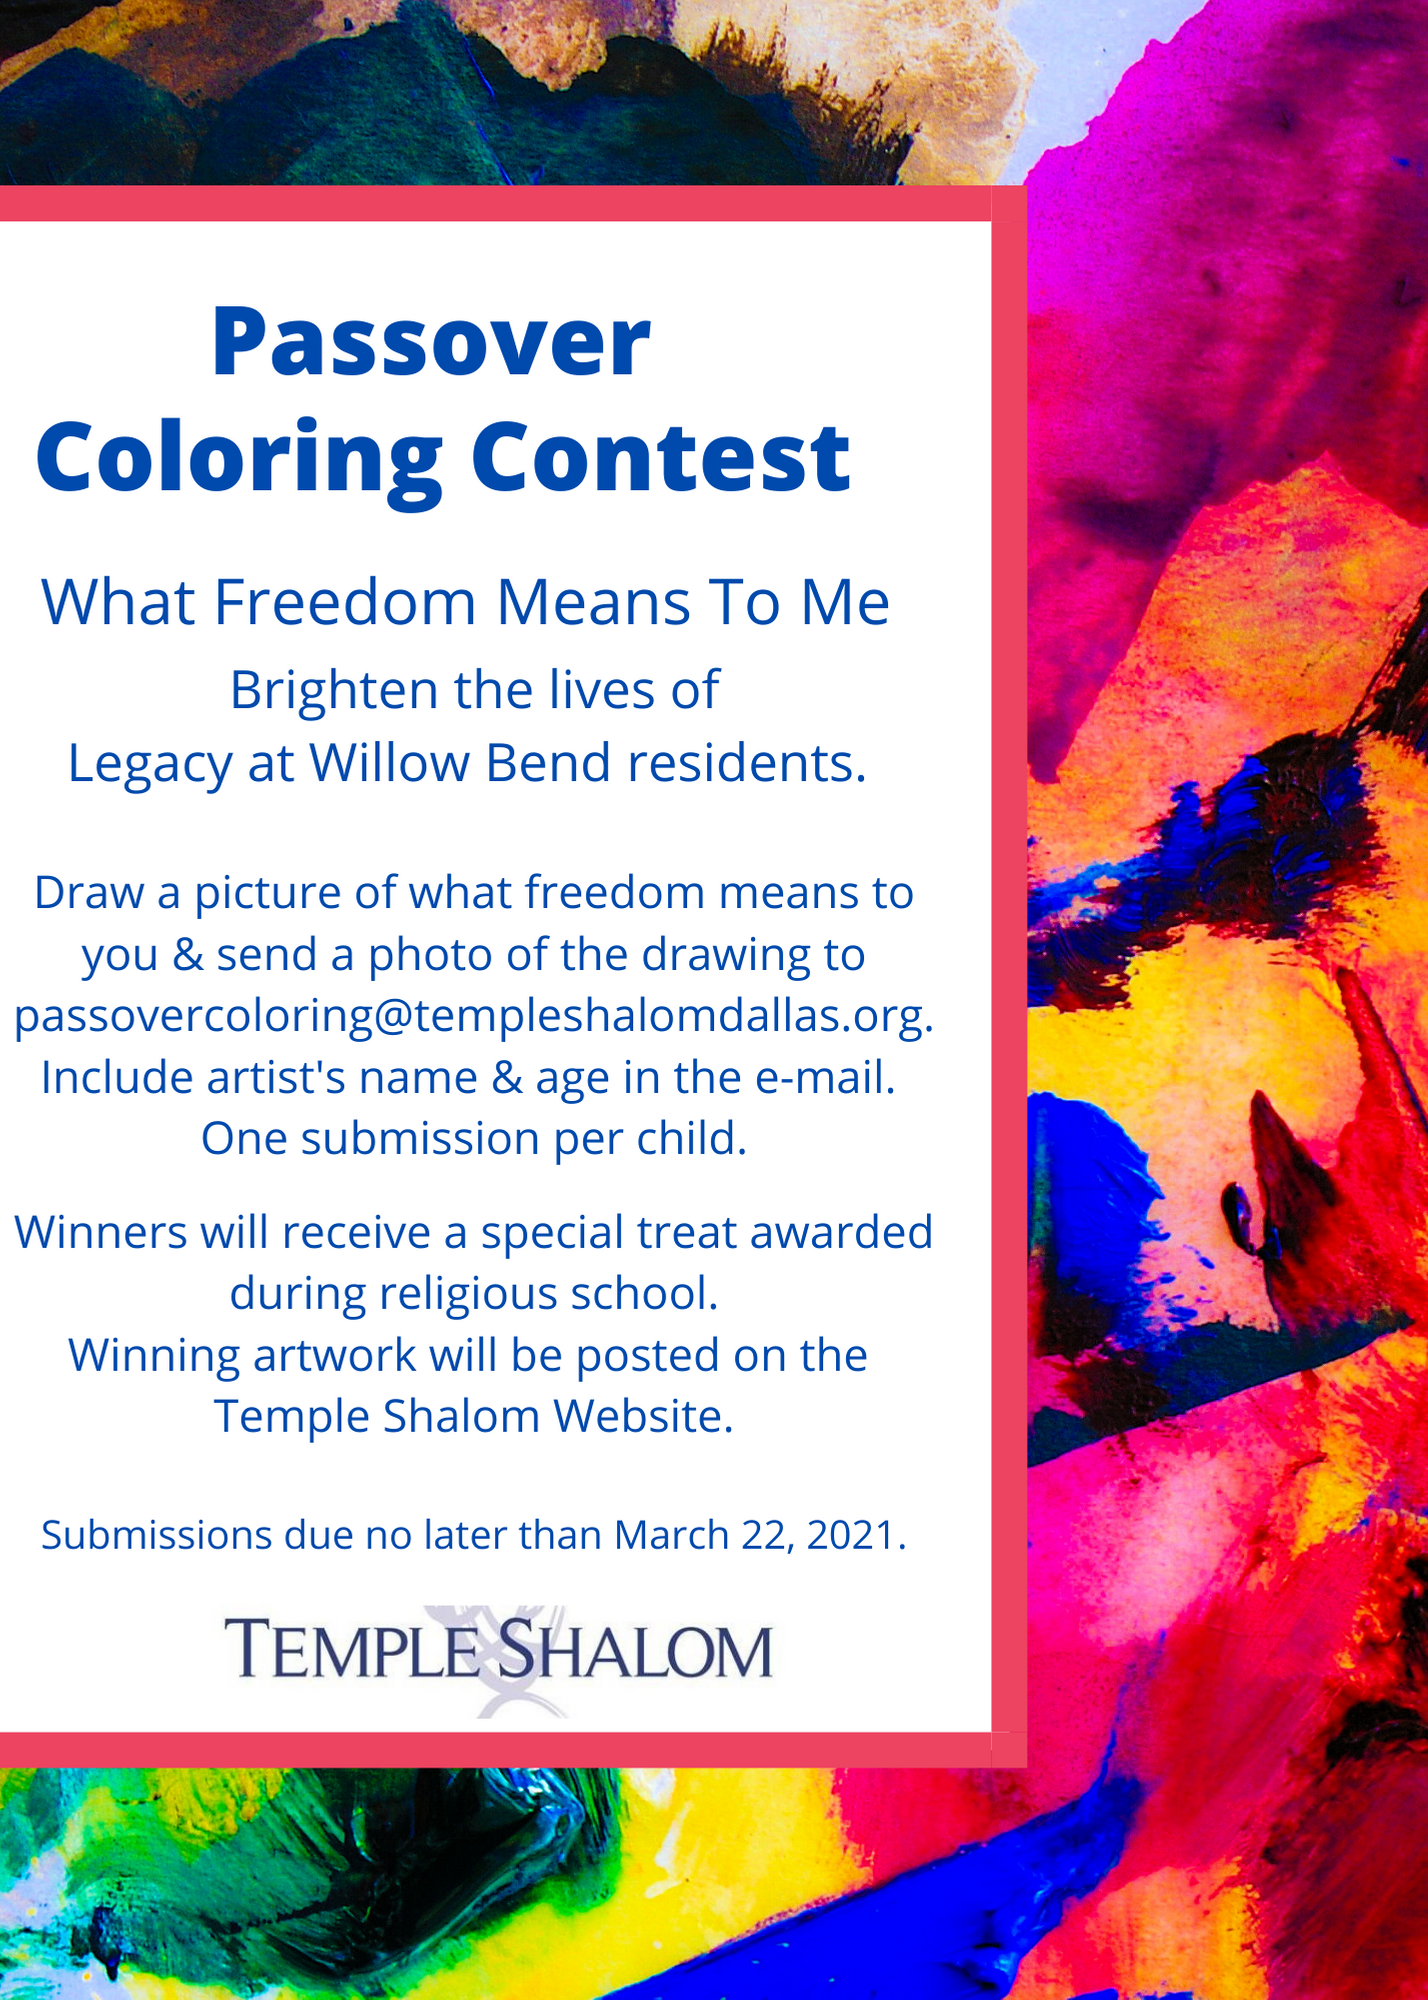 Passover Coloring Contest 2021 Flyer 1 15 2021